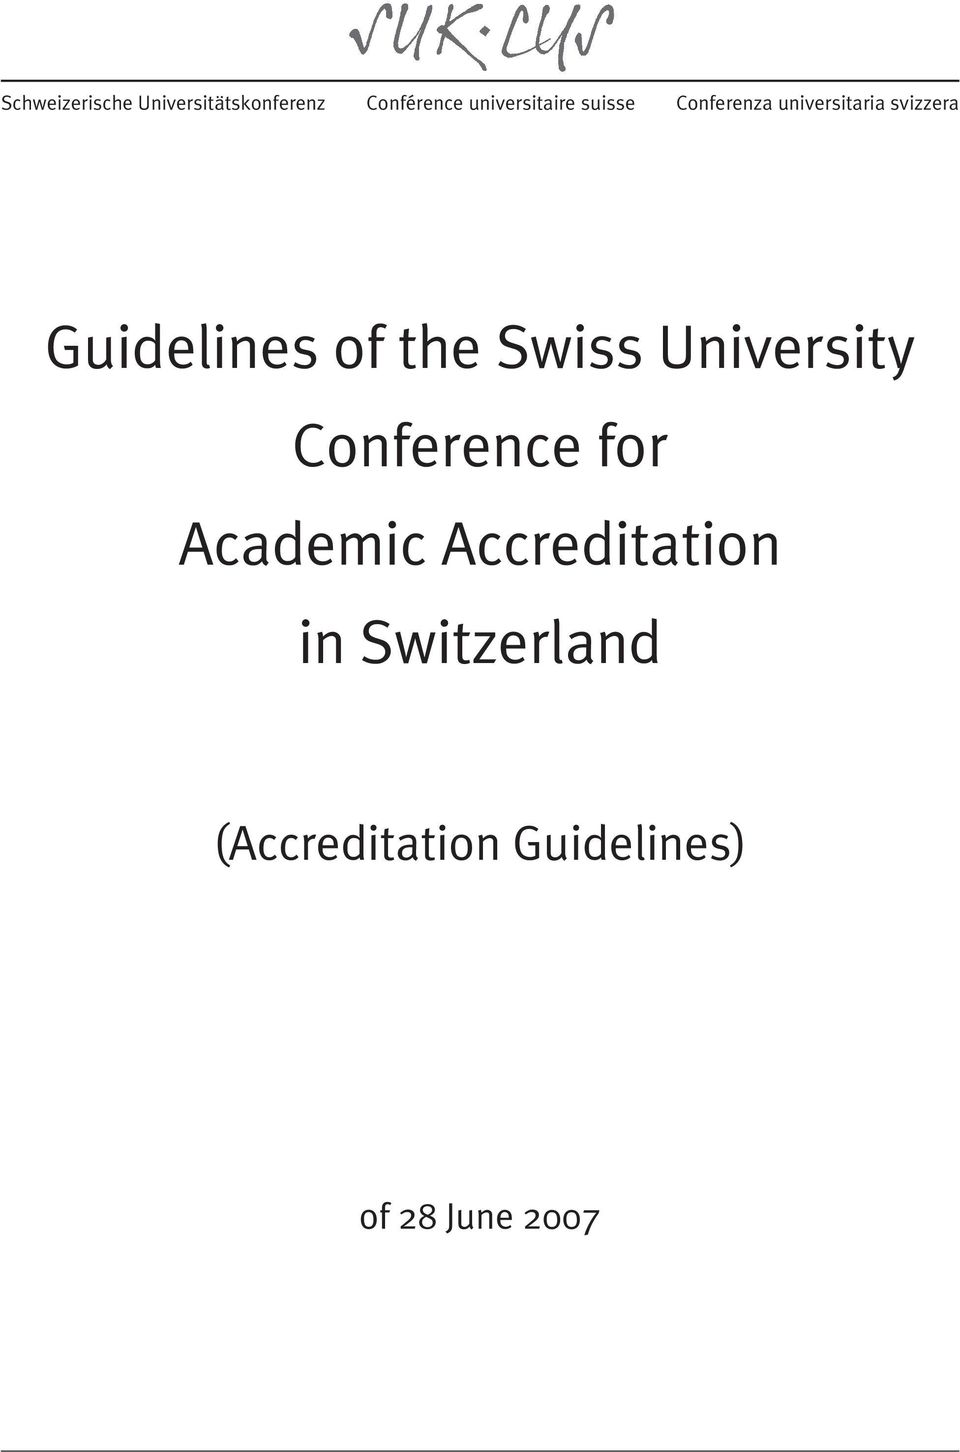 Guidelines of the Swiss University Conference for Academic